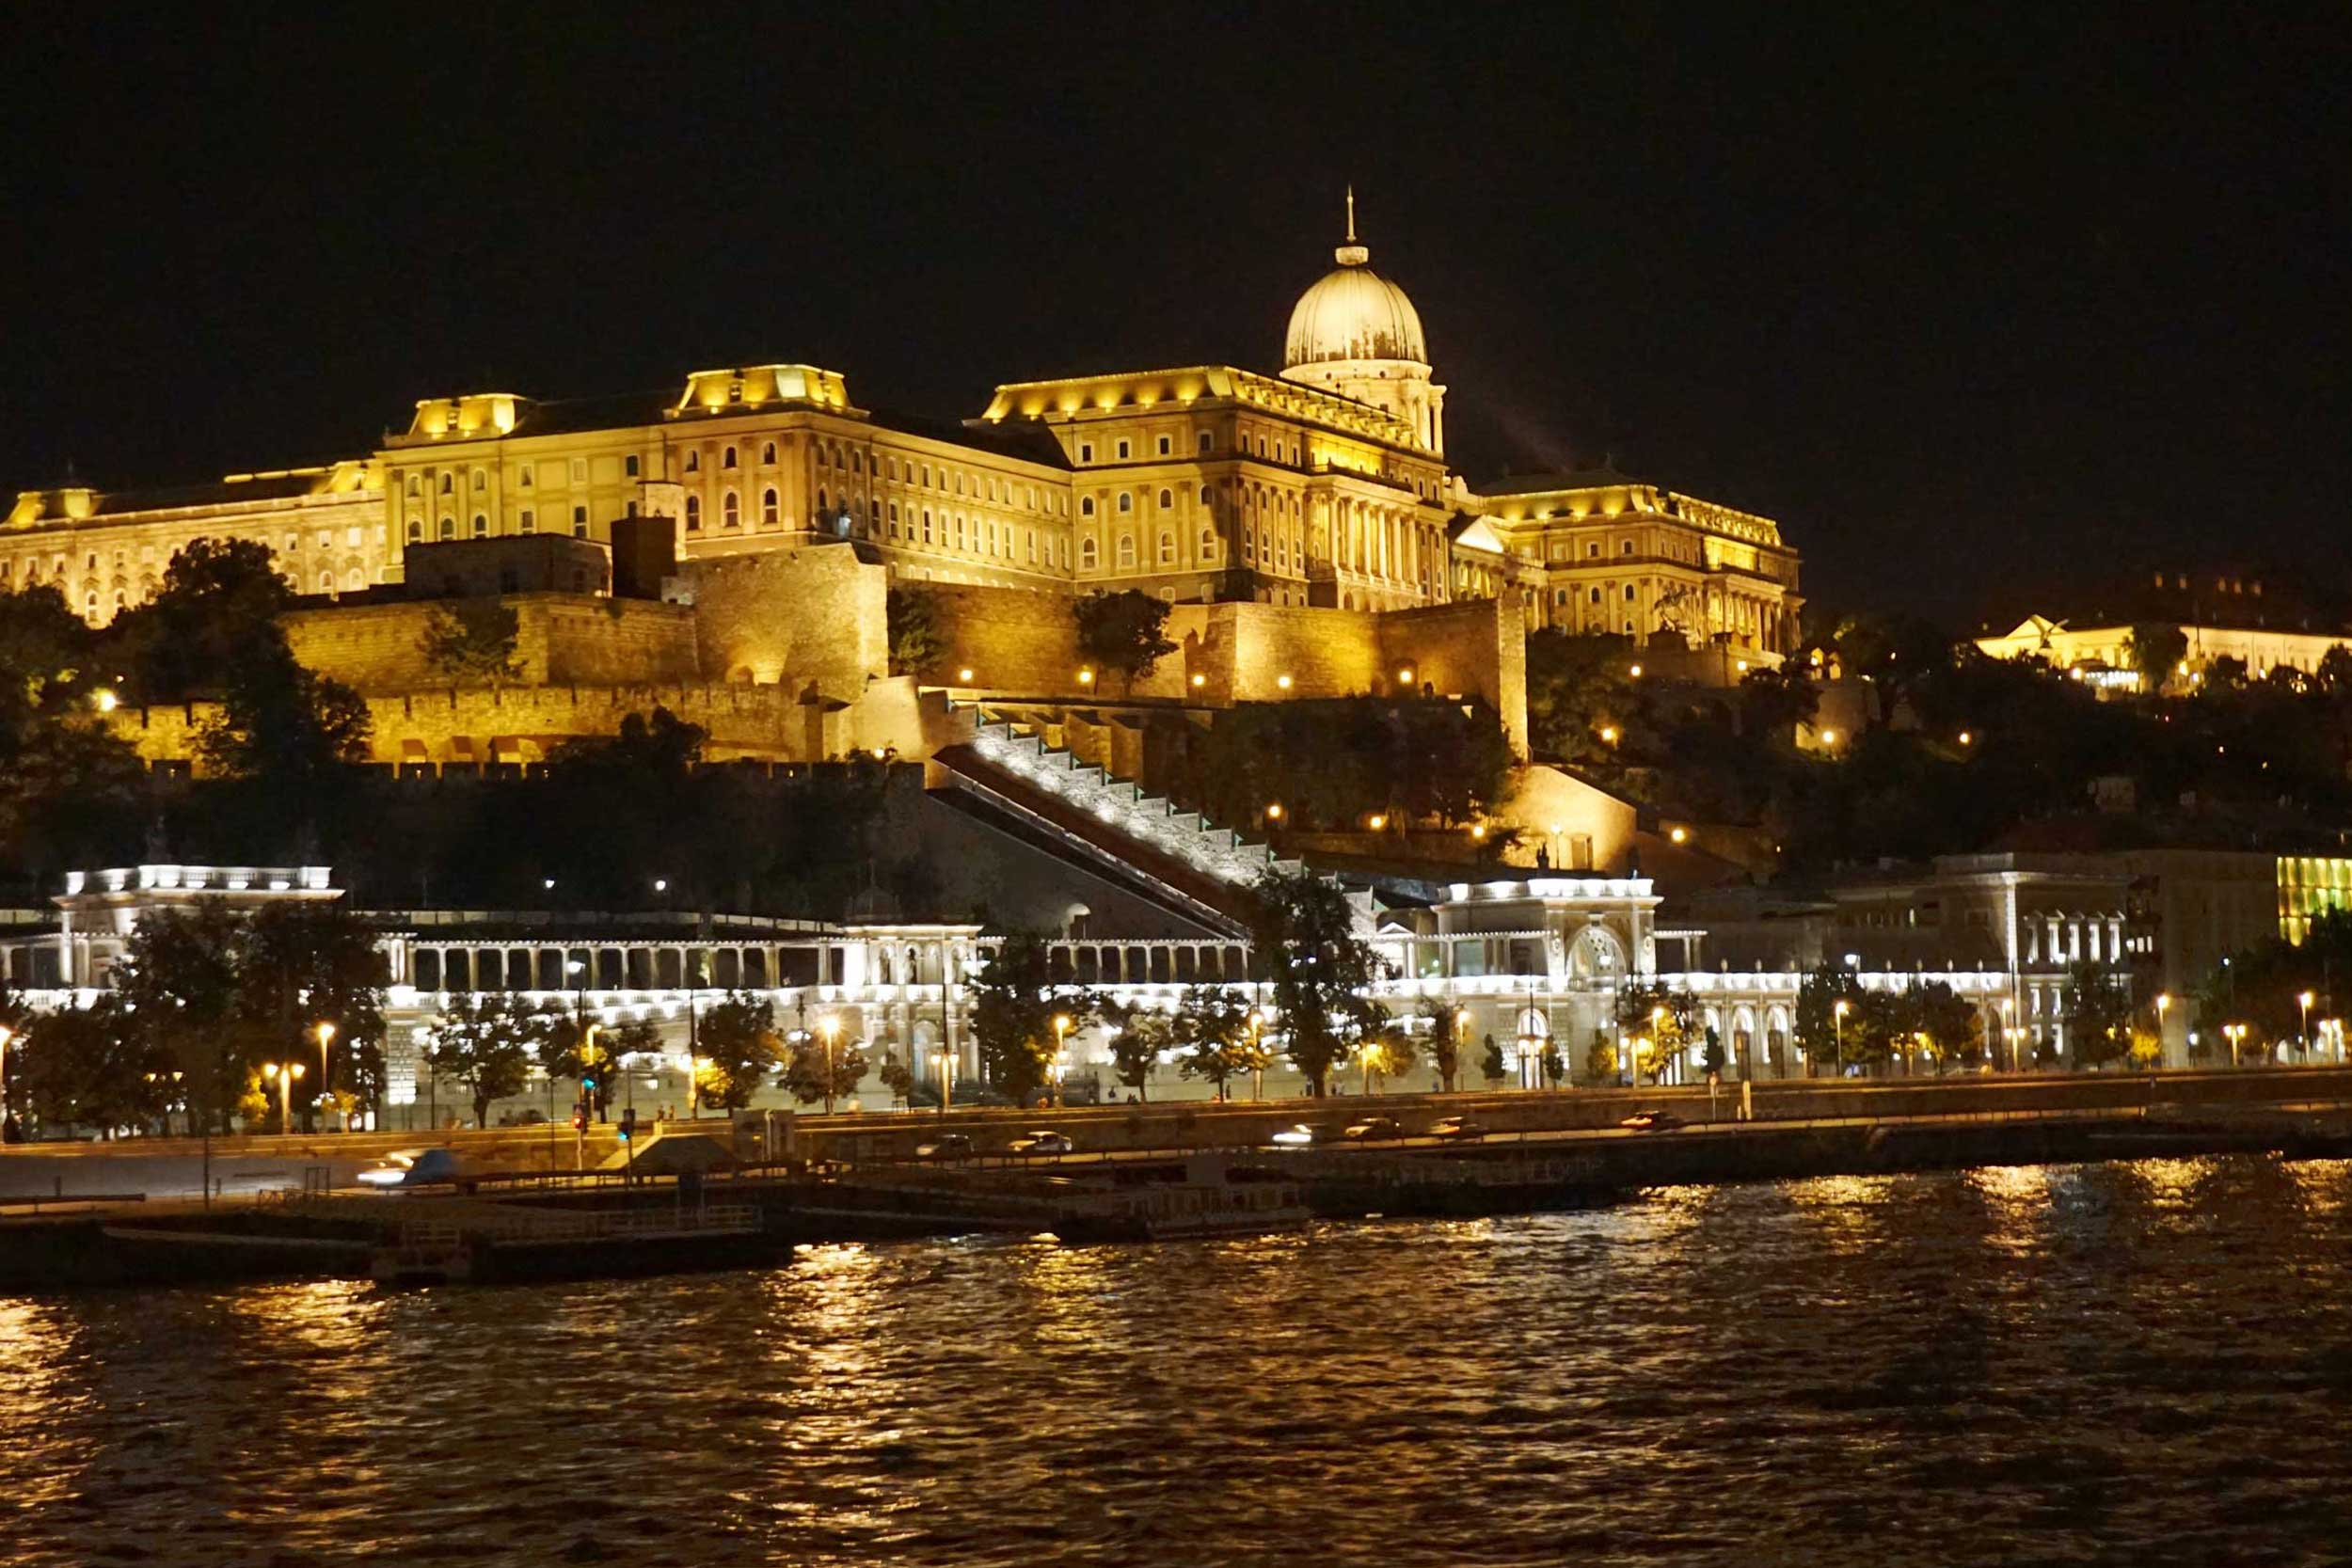 Large castle at night bathed in yellow light with steps leading down to lighted buildings by a river bank, Budapest